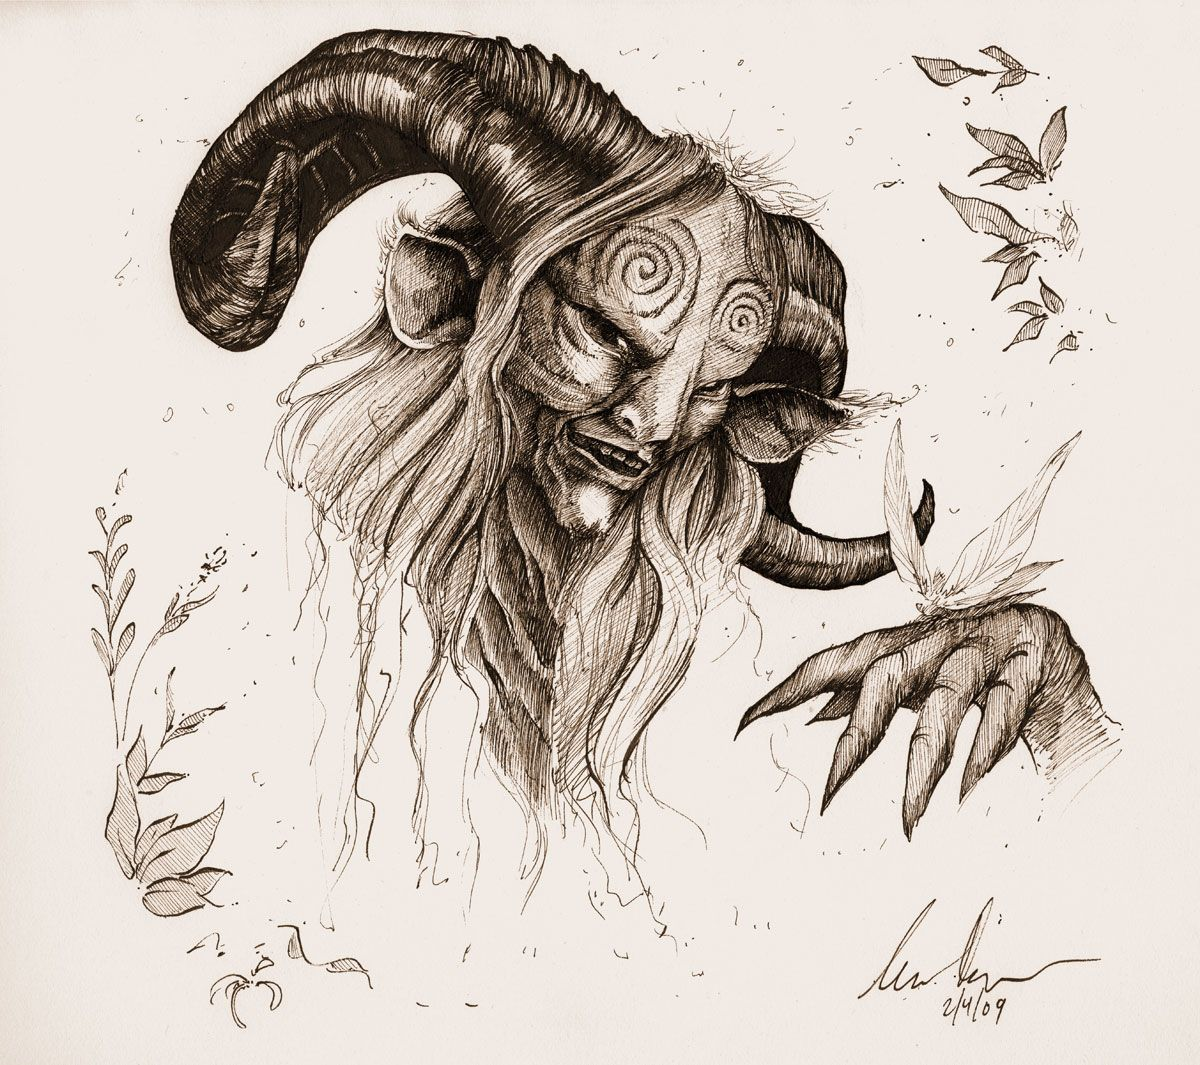 The faun from pans labyrinth